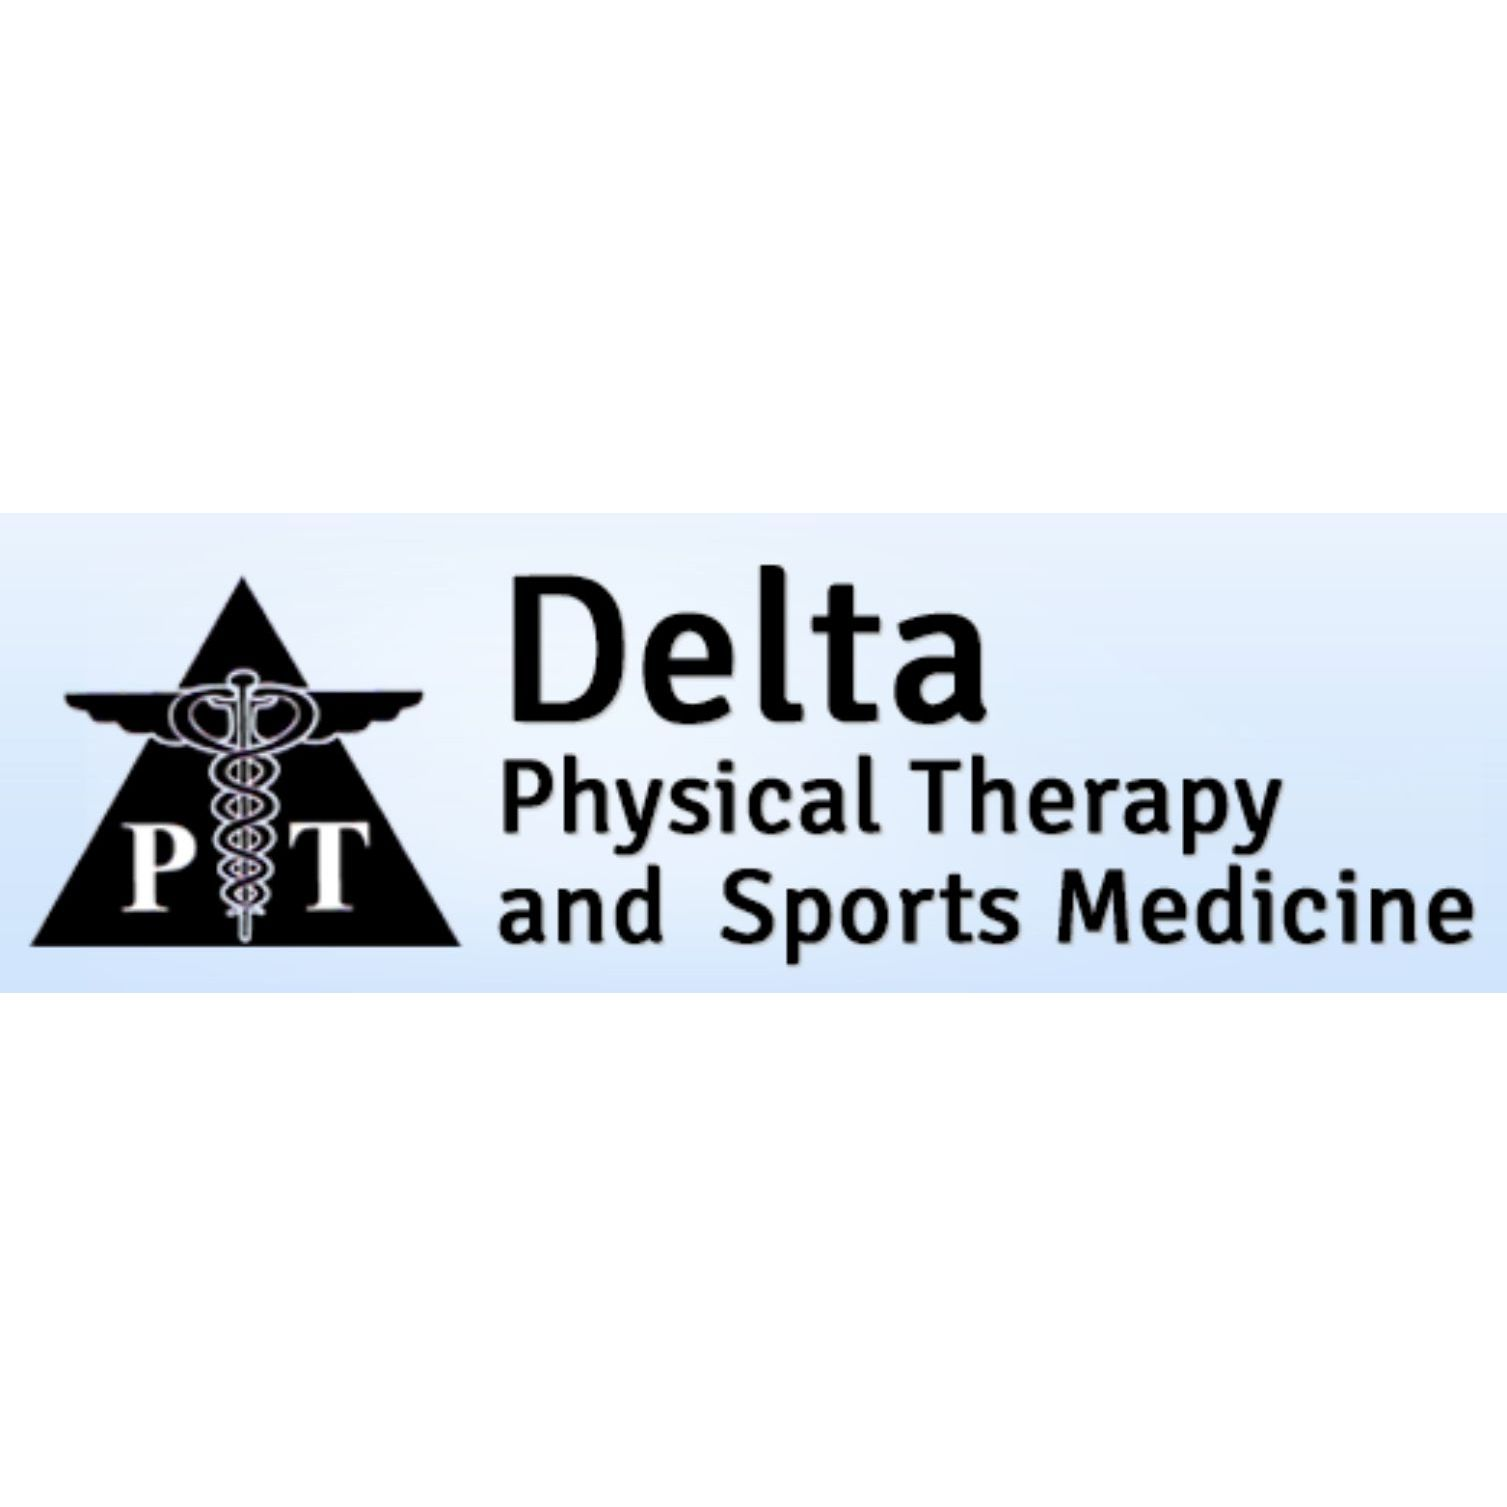 Delta Physical Therapy and Sports Medicine